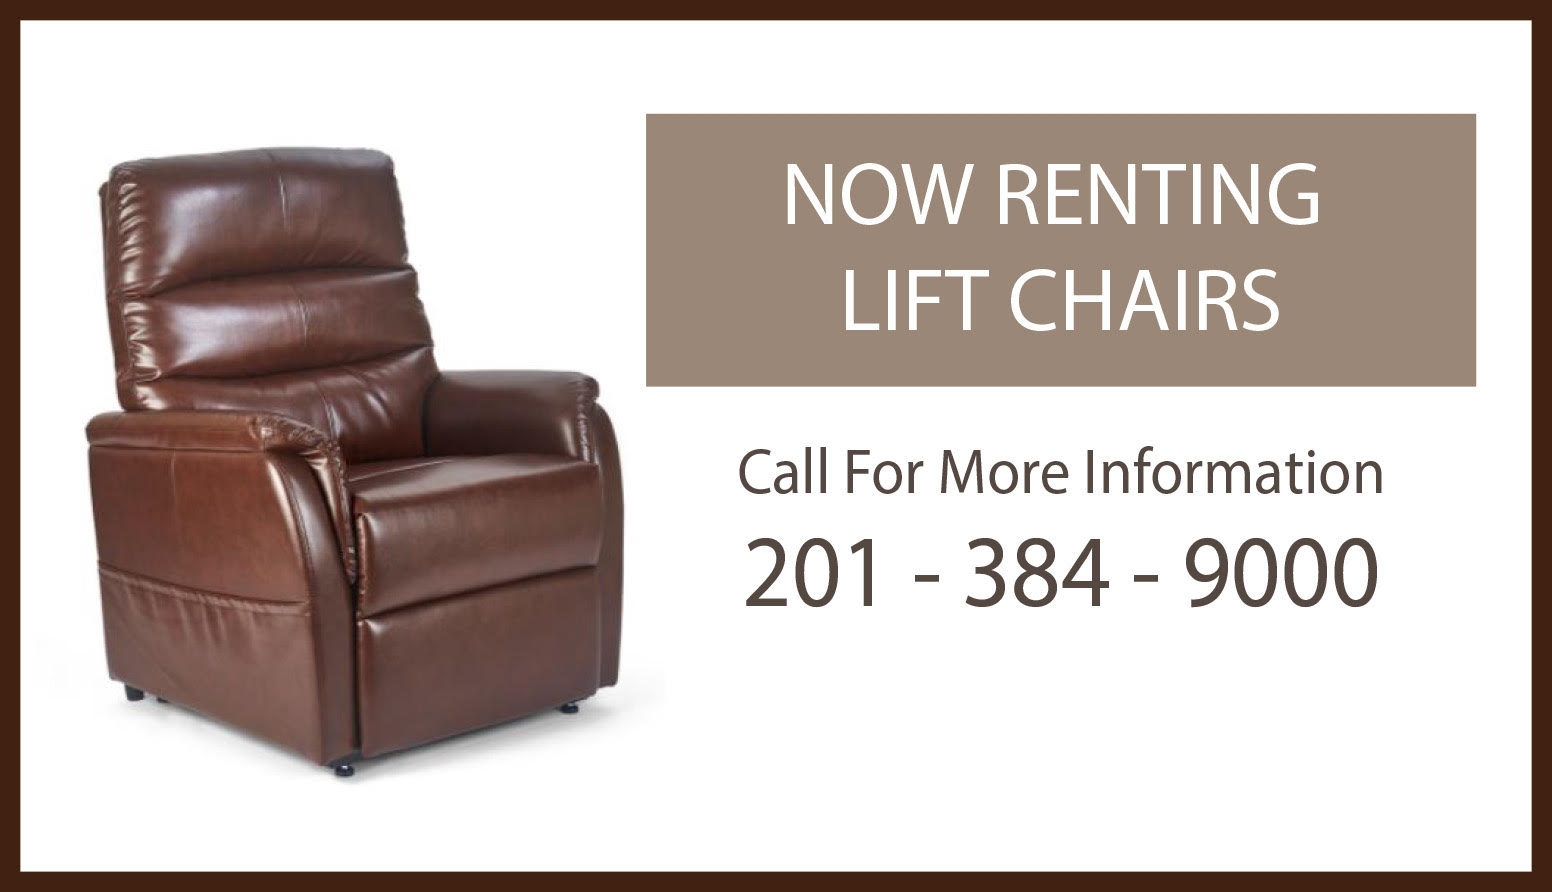 Cornell Surgical Co.- Rental Lift chairs.